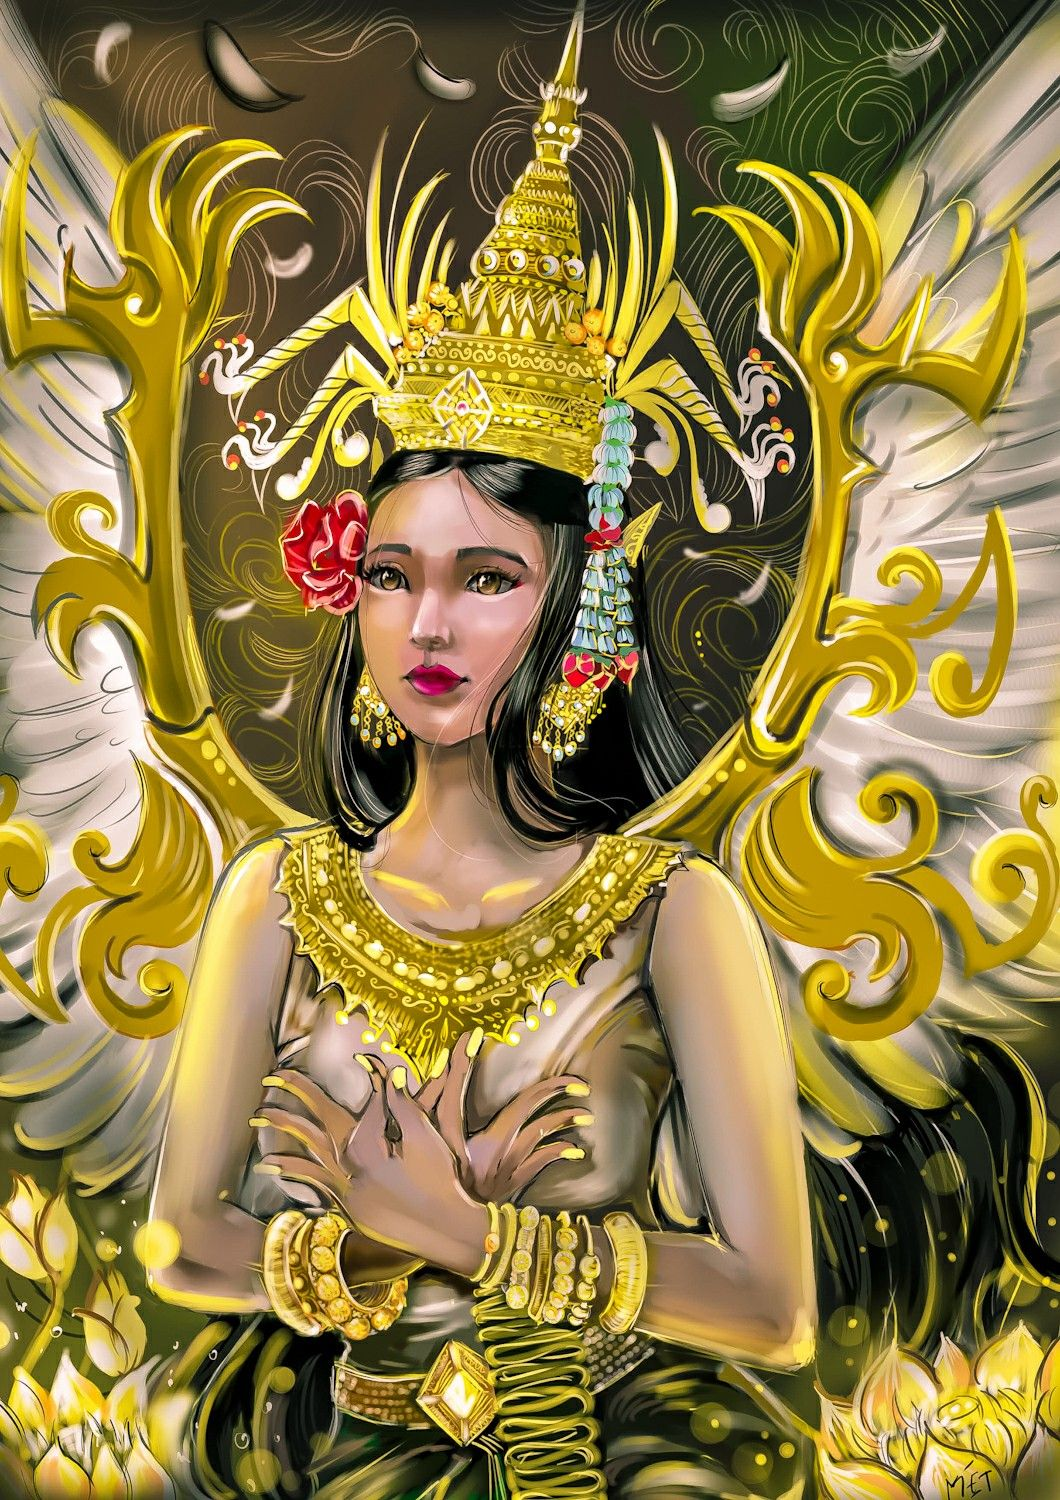 They figure prominently in the sculpture, dance, literature and painting of many South Asian and South east Asian cultures. They are often seen at major cultural sites like Angkor Wat. #Art #Cambodia #Apsara